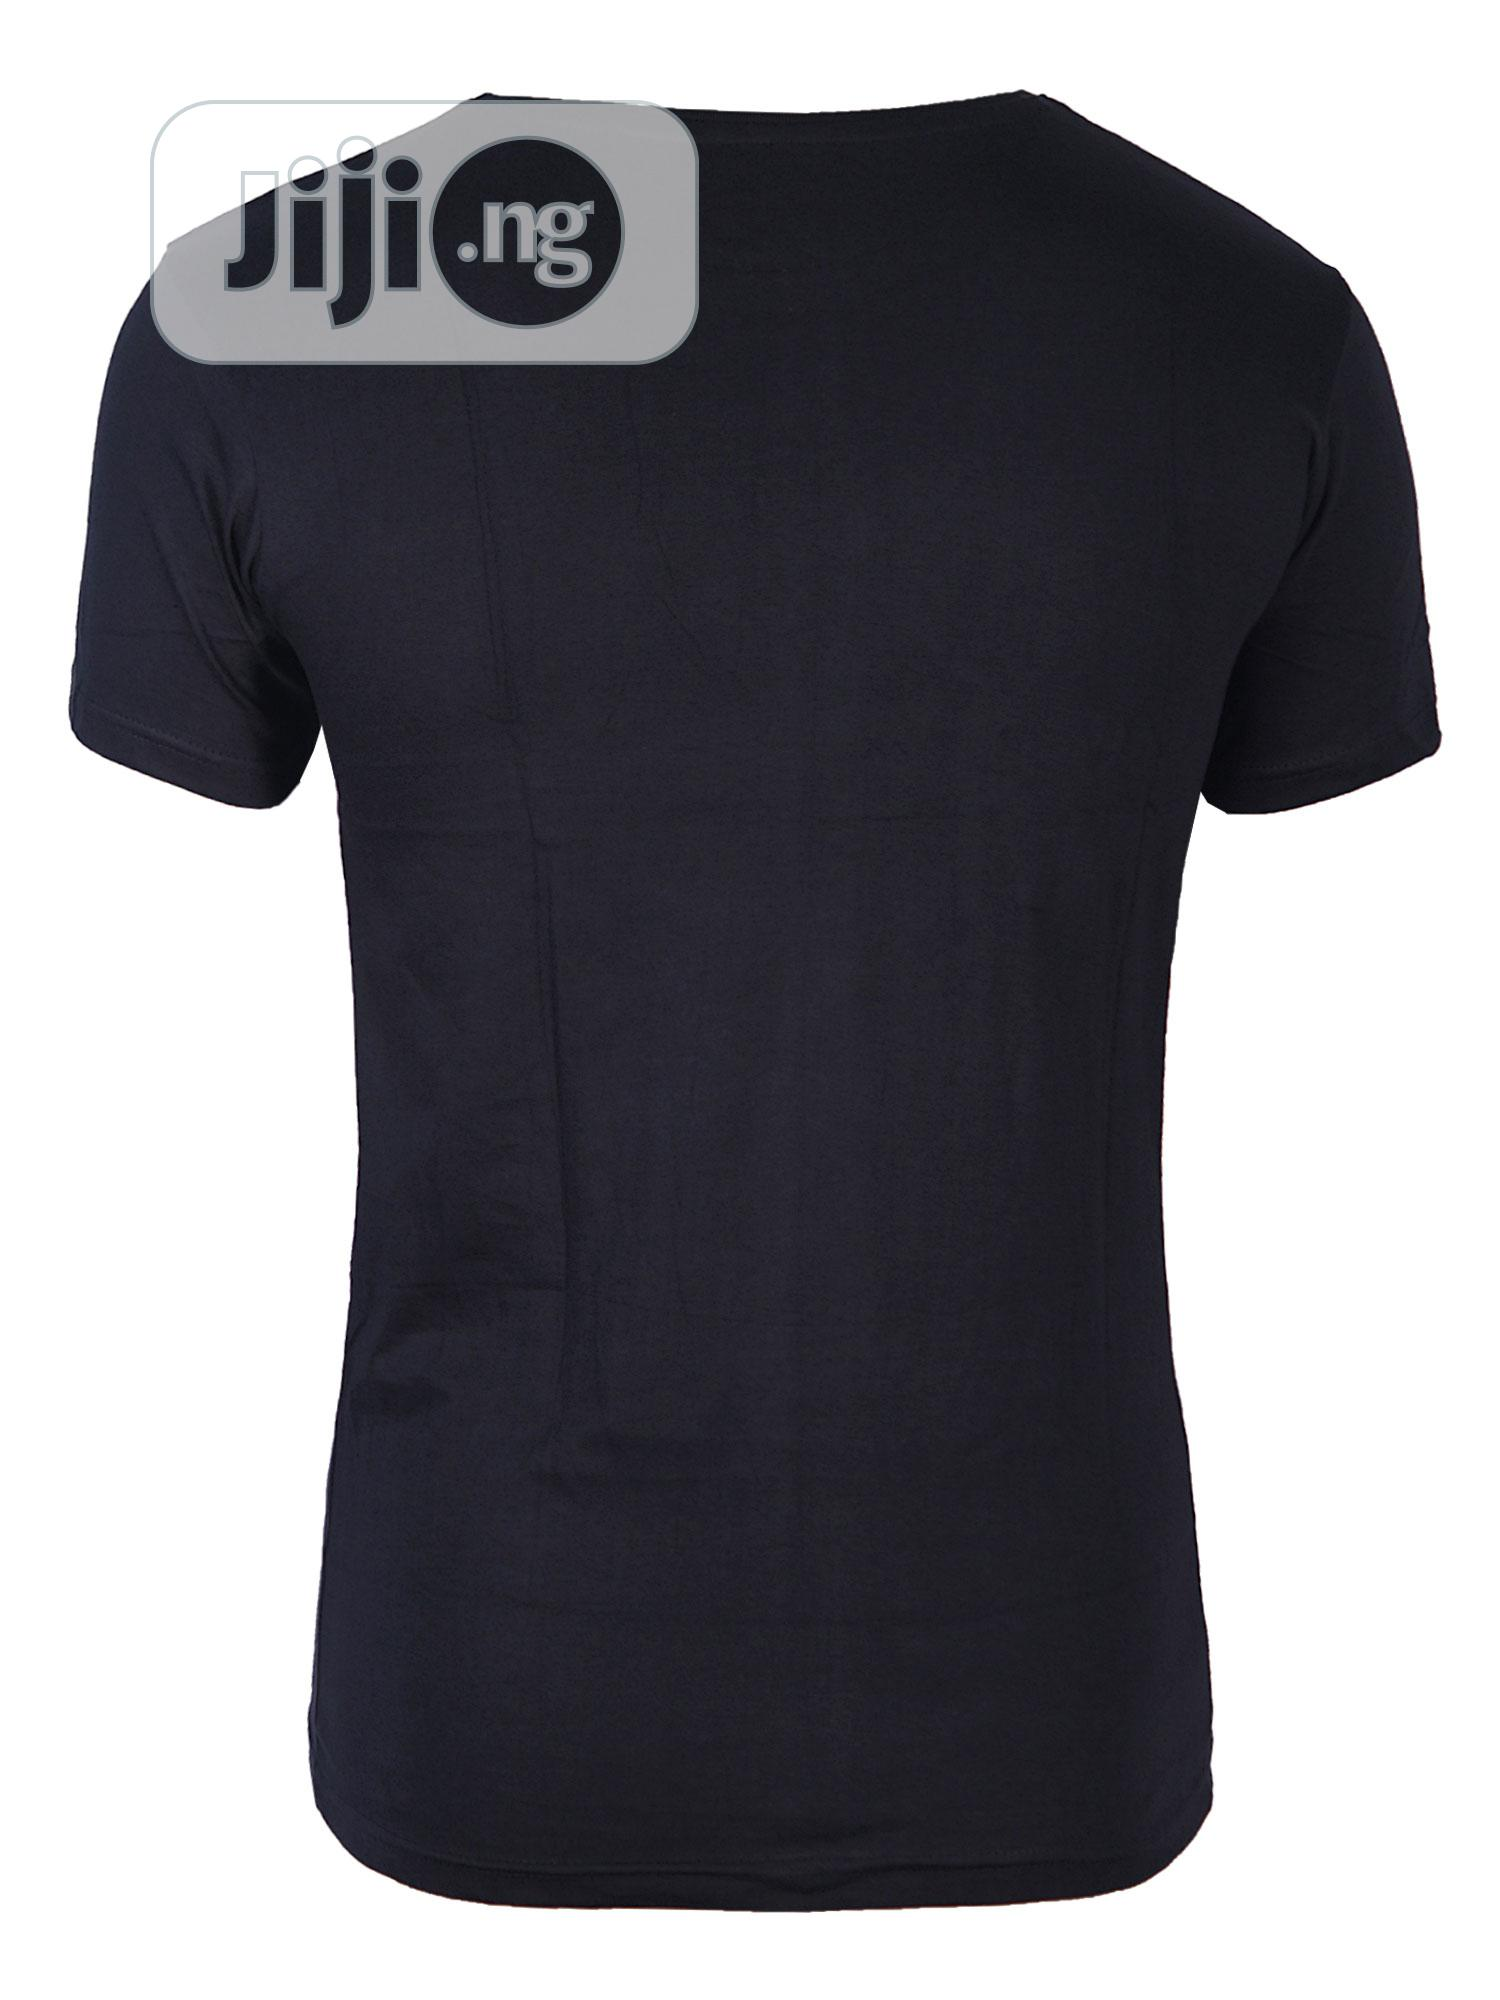 Black Company Cotton Club T-shirt | Clothing for sale in Surulere, Lagos State, Nigeria